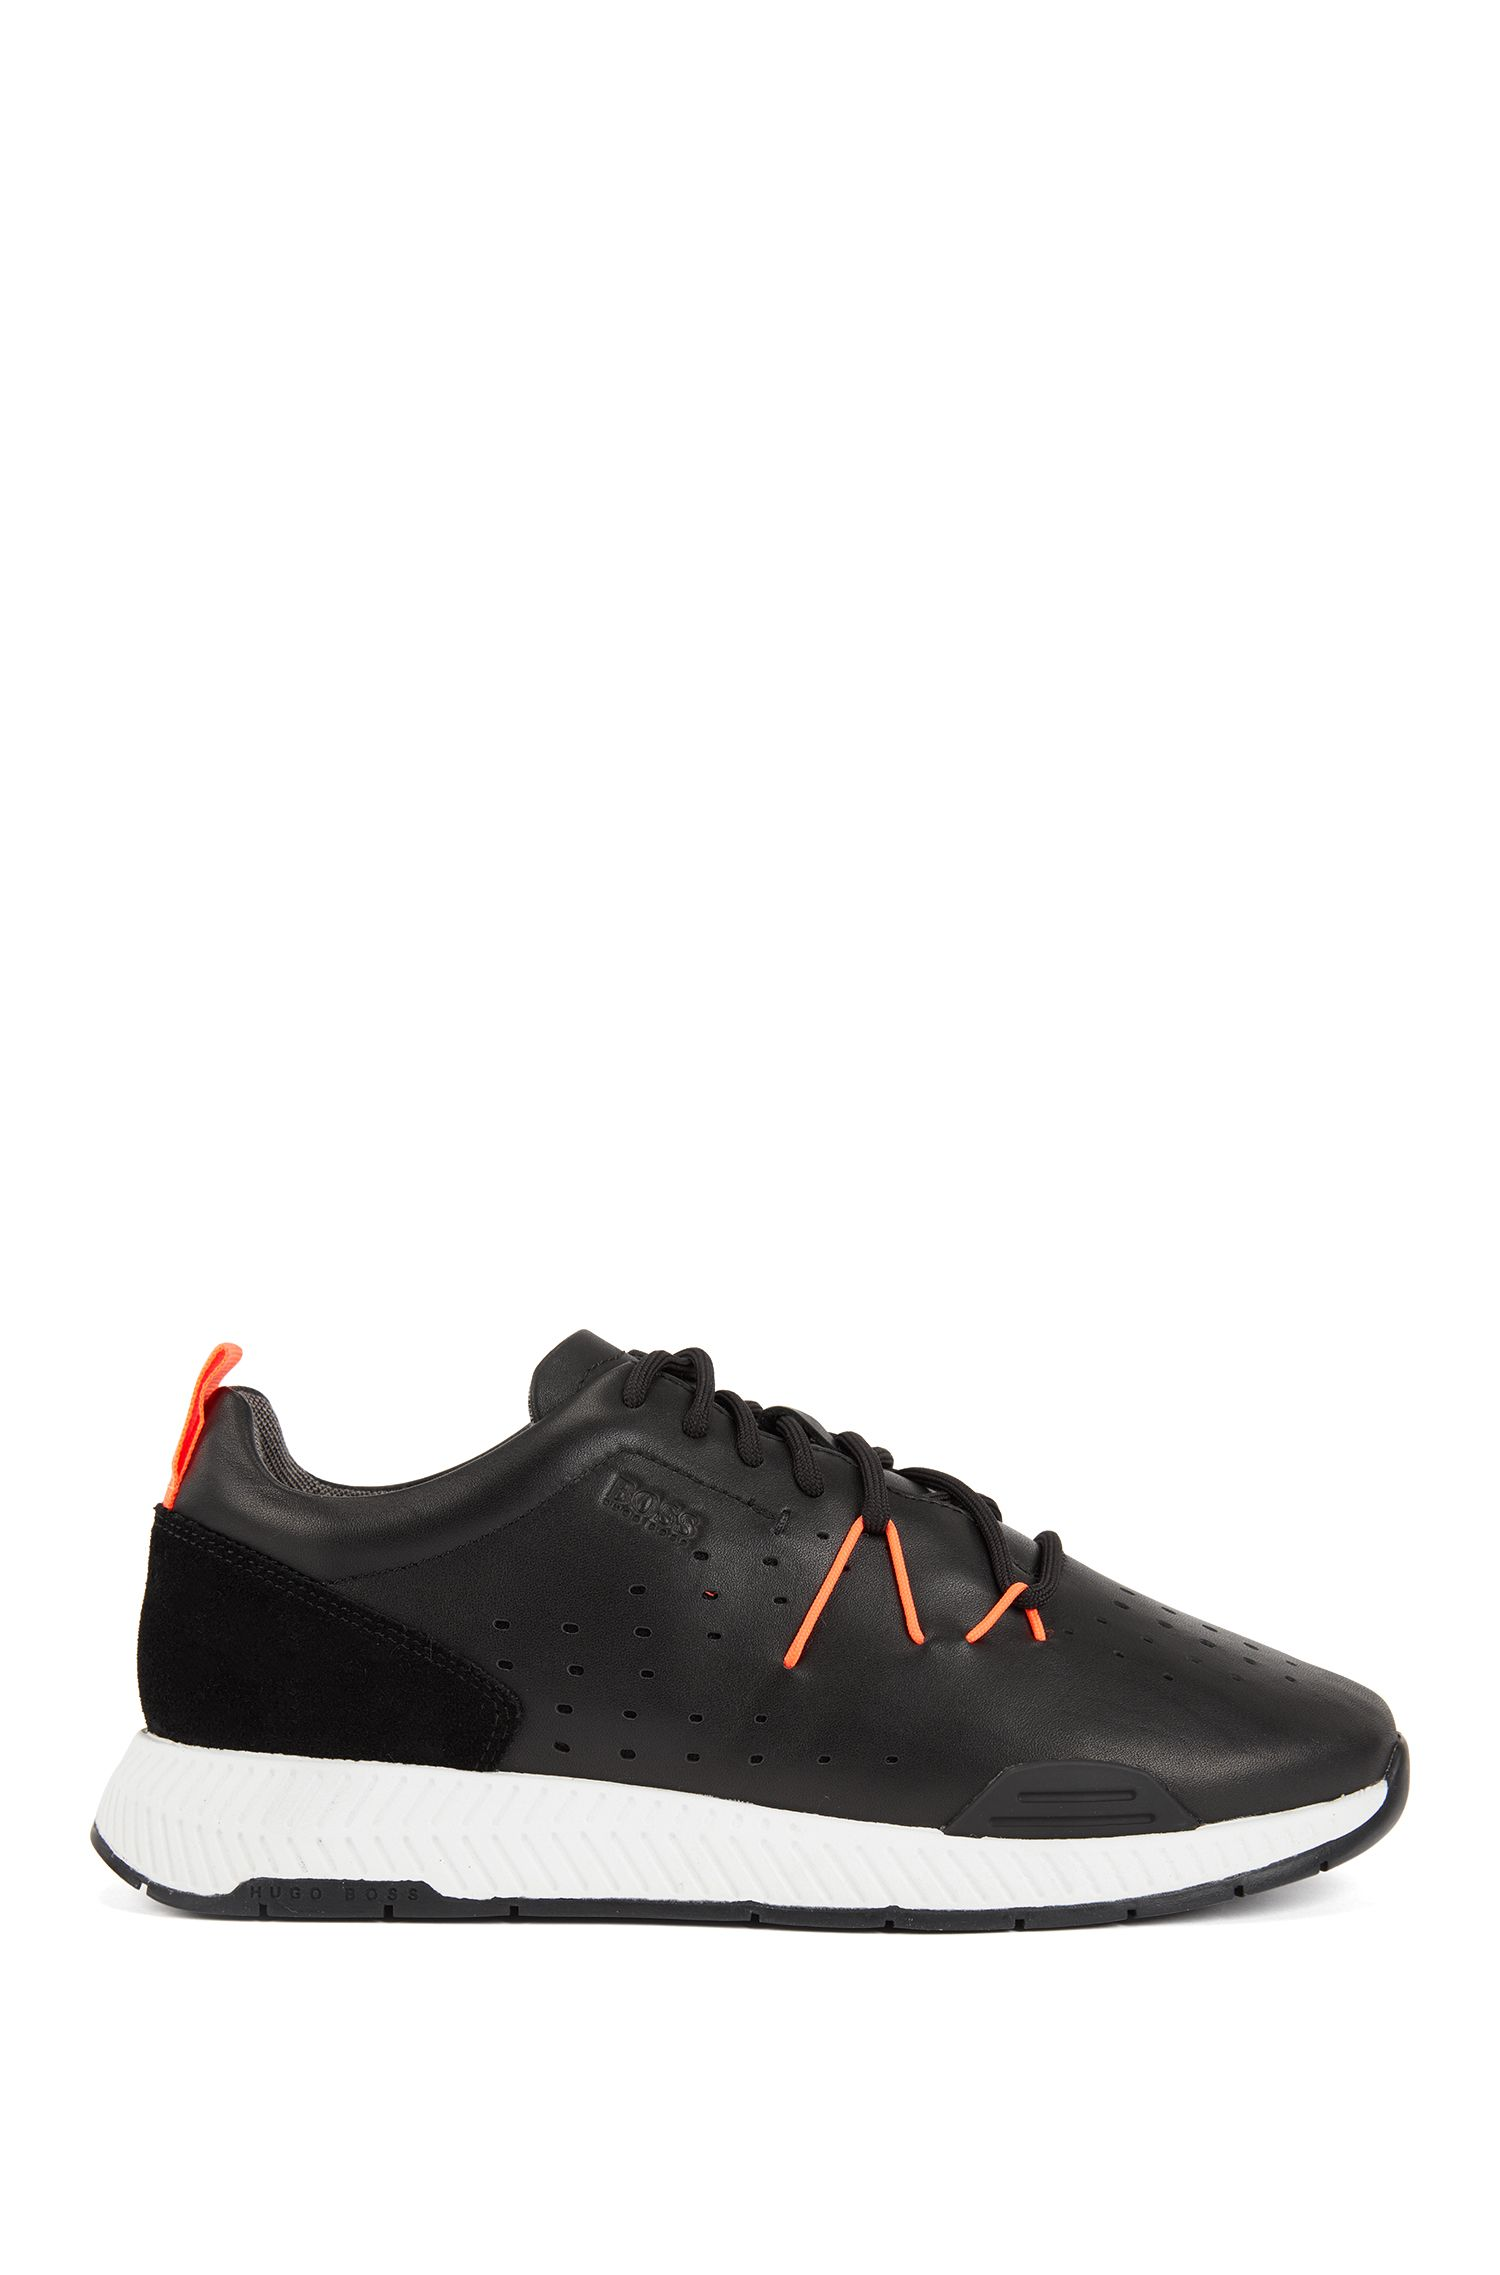 Sneakers stile runner in pelle con tomaia traforata, Nero